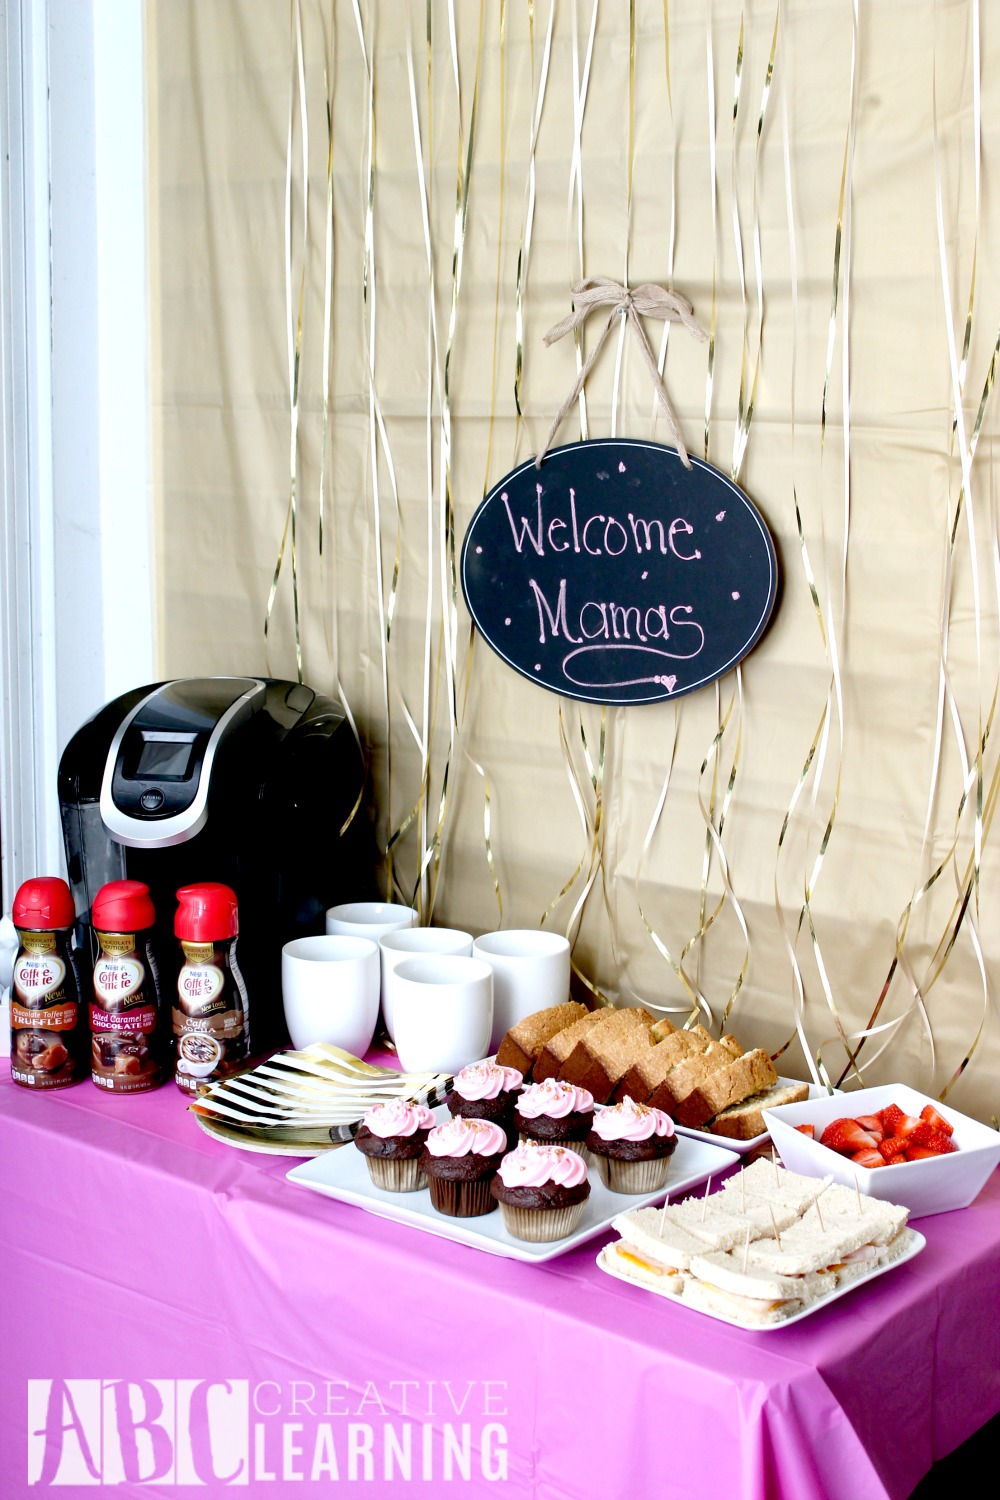 A Party Break For Moms set up